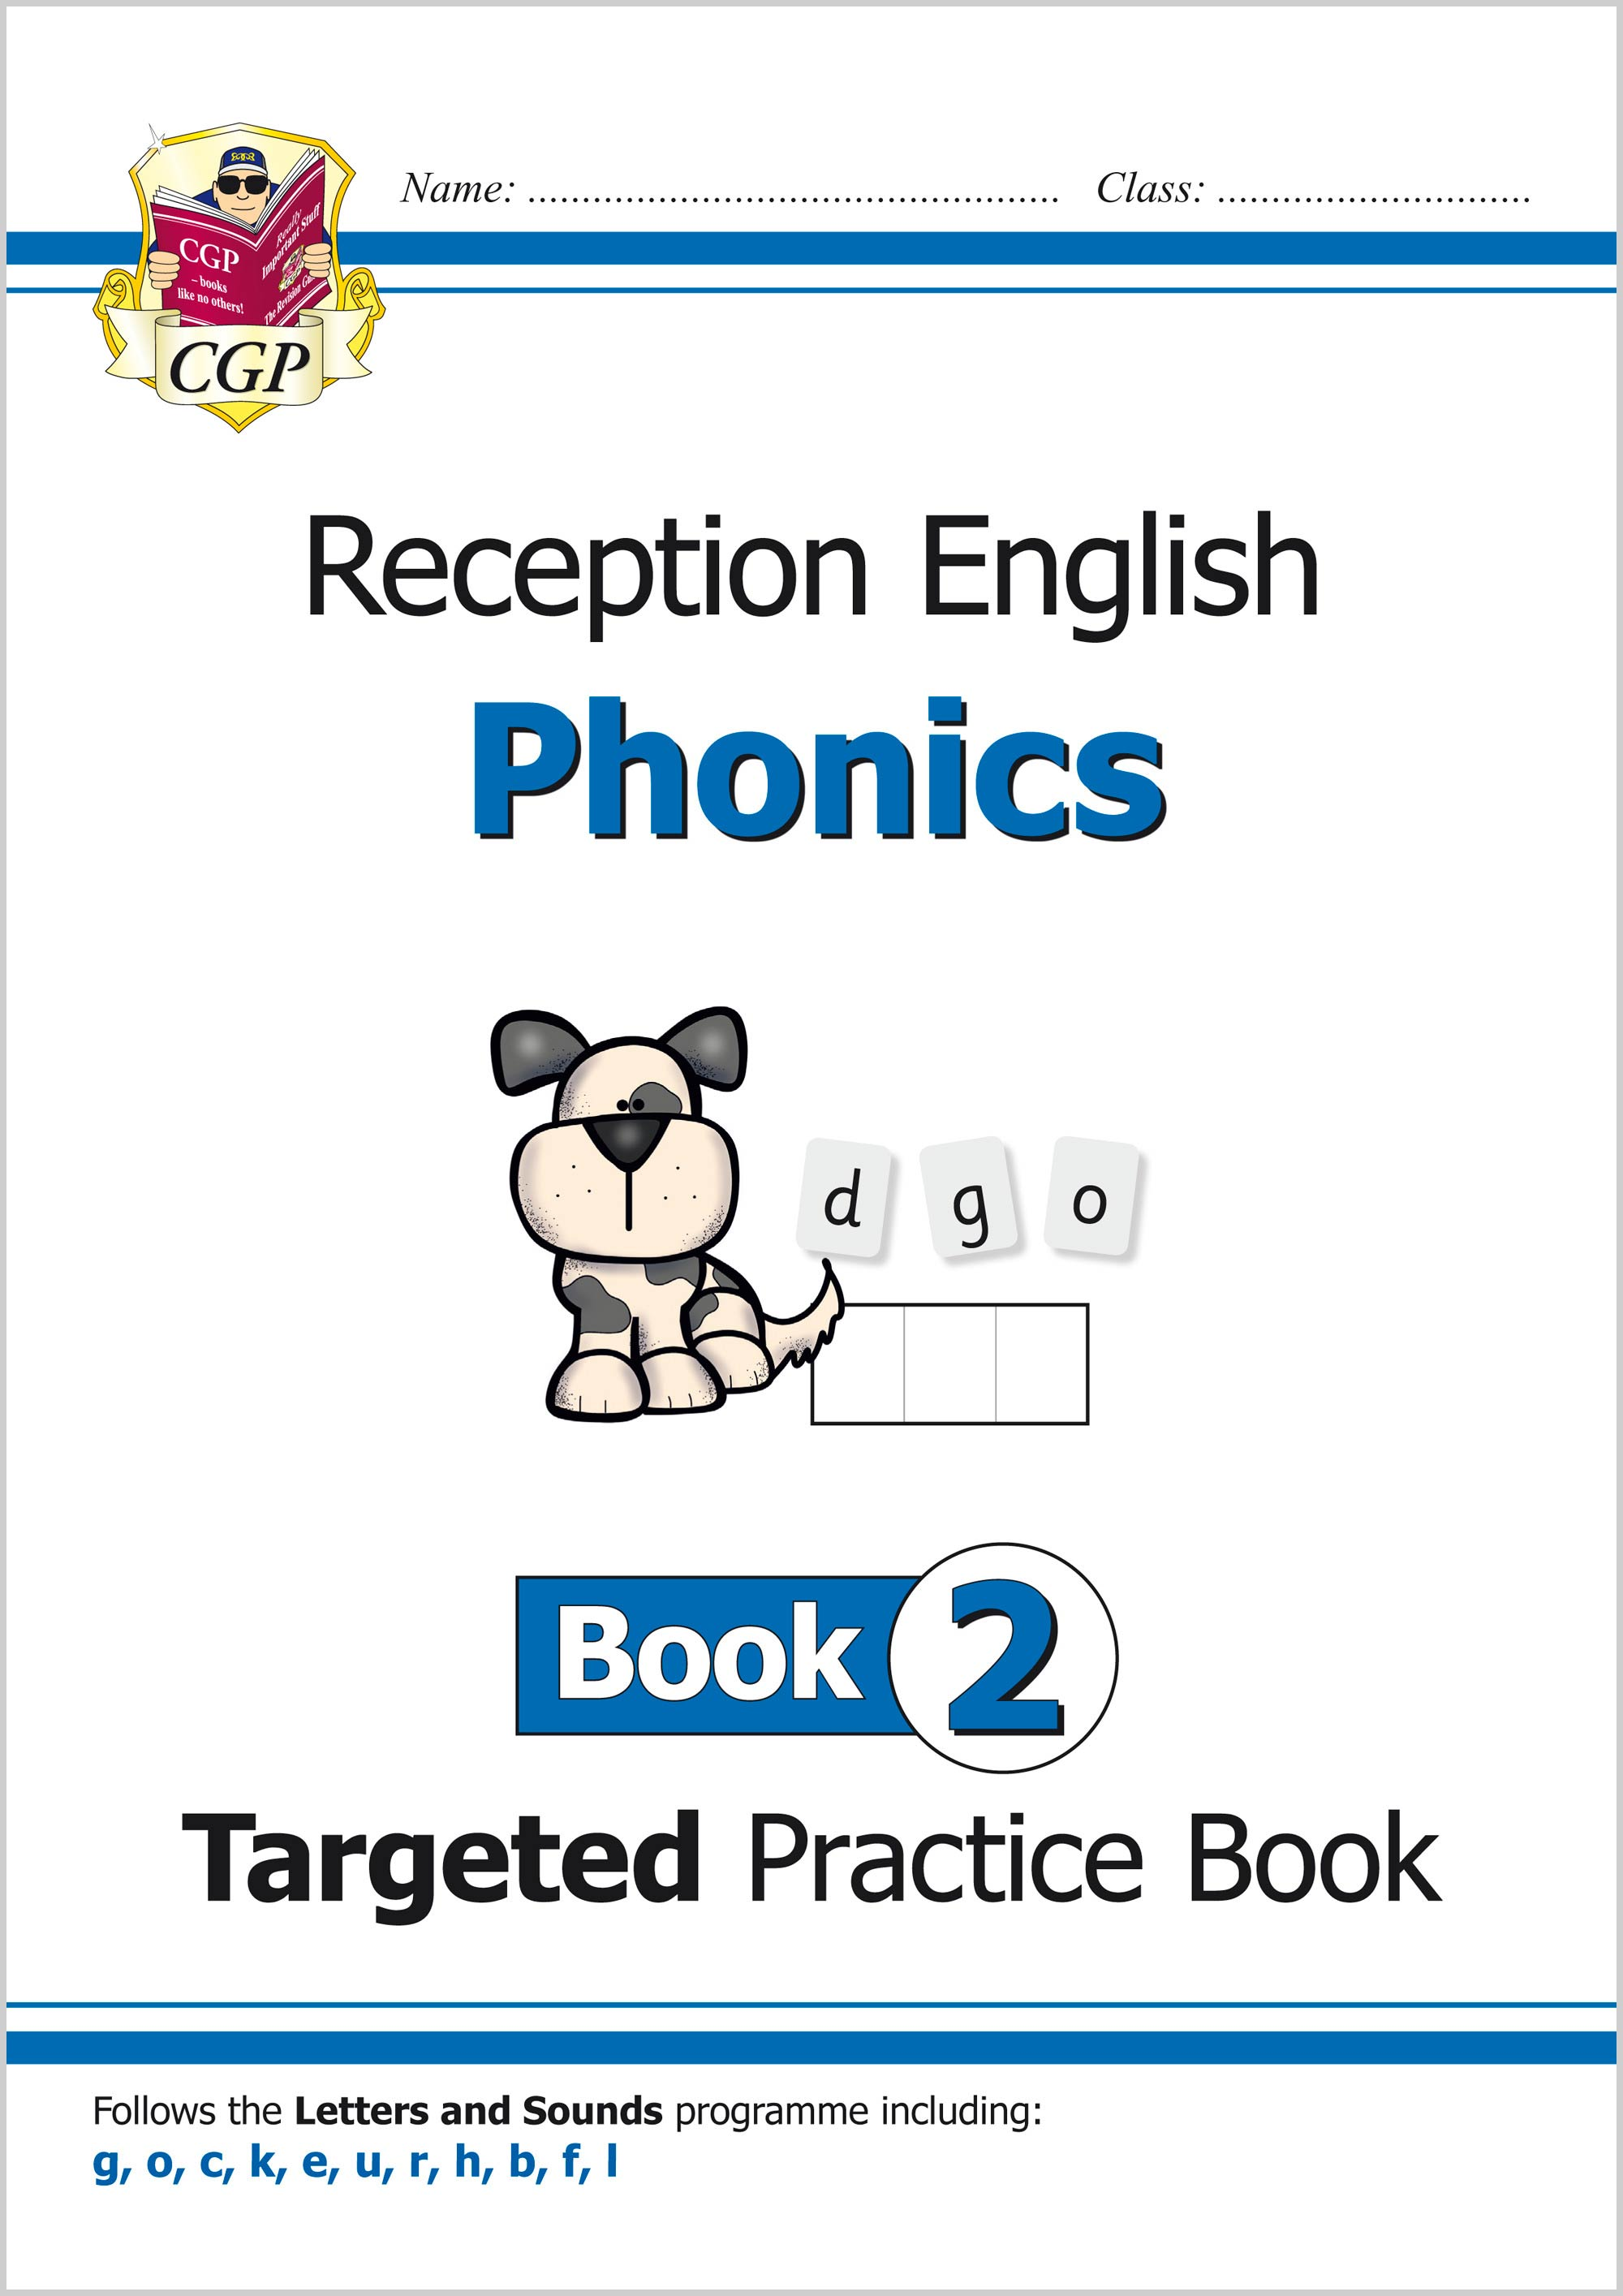 EROW211 - New English Targeted Practice Book: Phonics - Reception Book 2